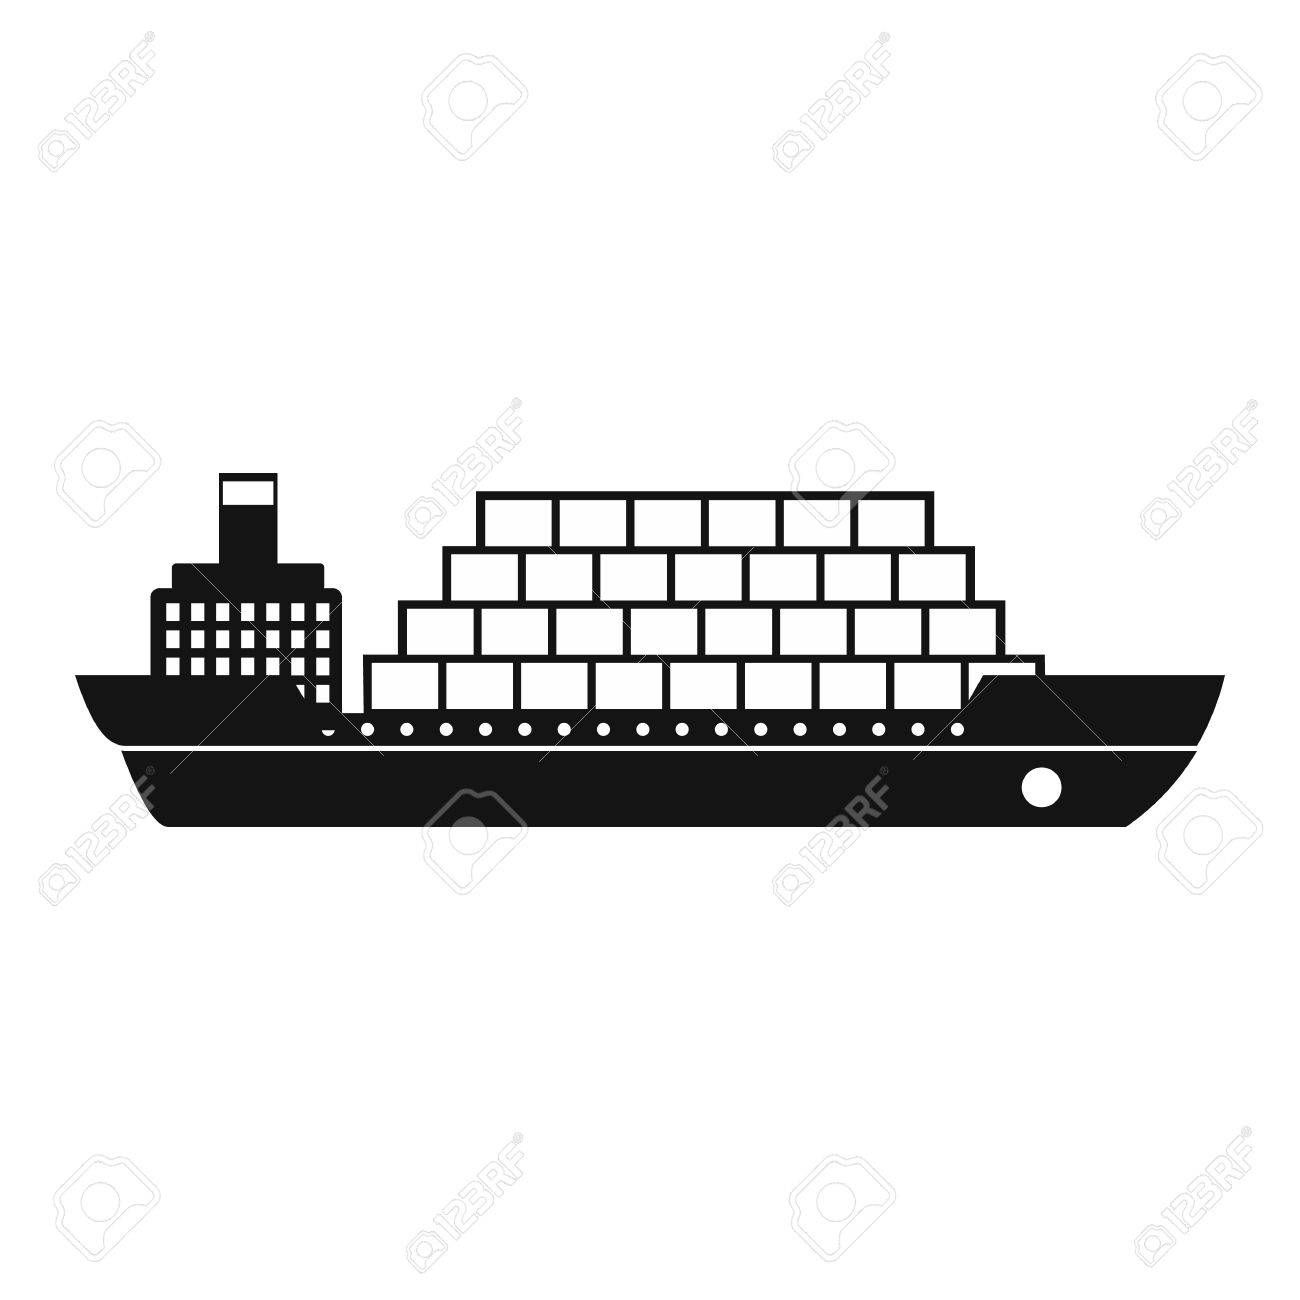 Cargo ship flat black simple icon on a white background.